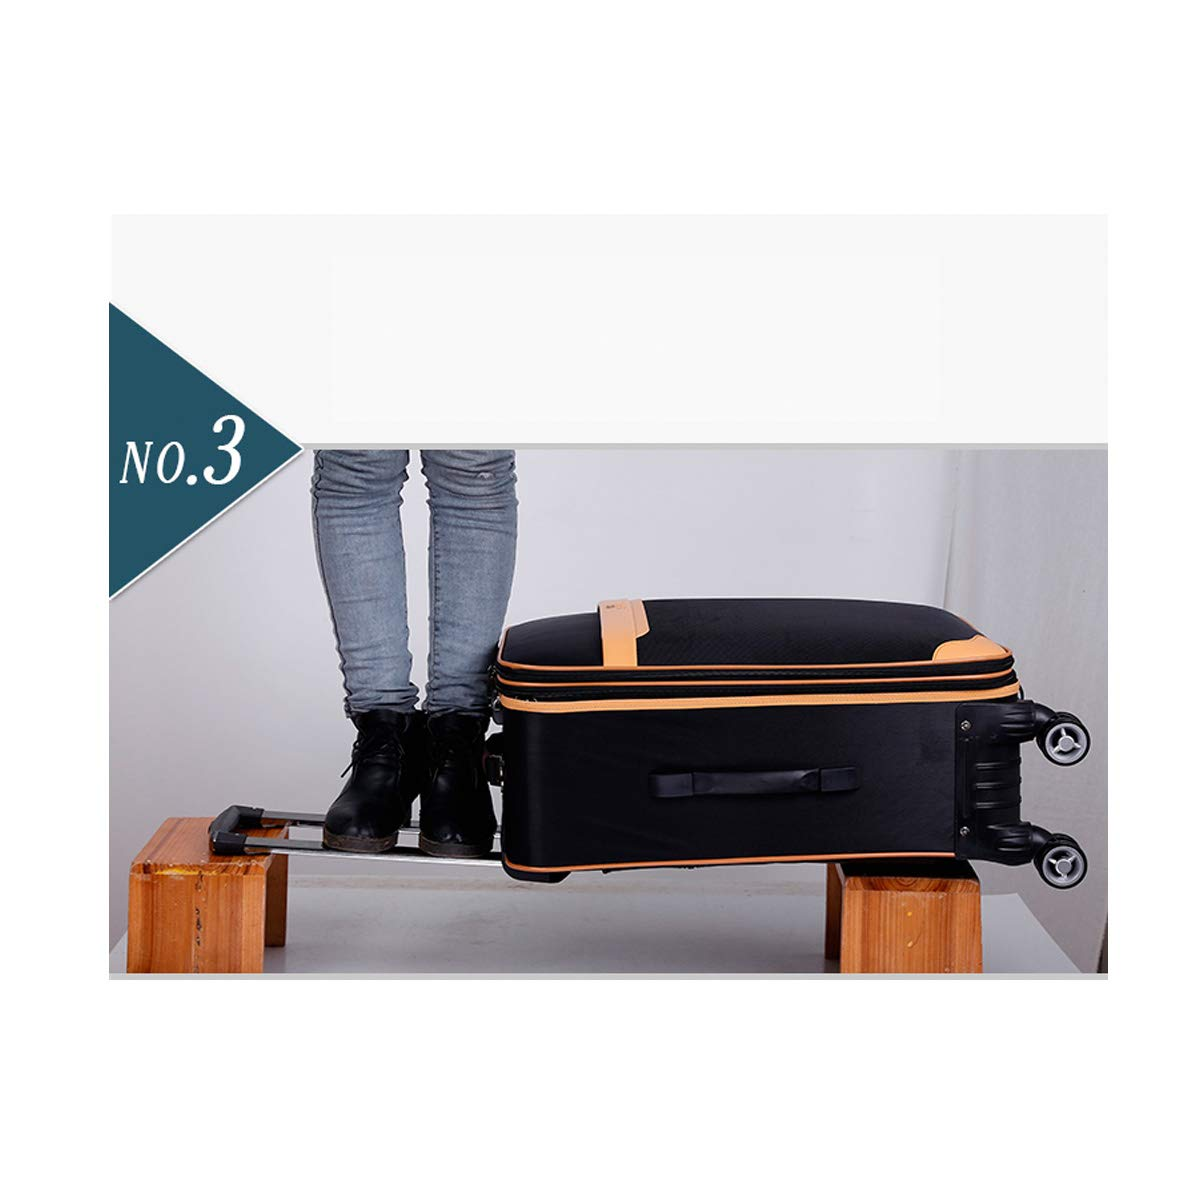 Trolley Case Best Gift Bahaowenjuguan Soft Rotating Luggage Travel Organizer Color : Black, Size : 24 Black 20 Carrying Case